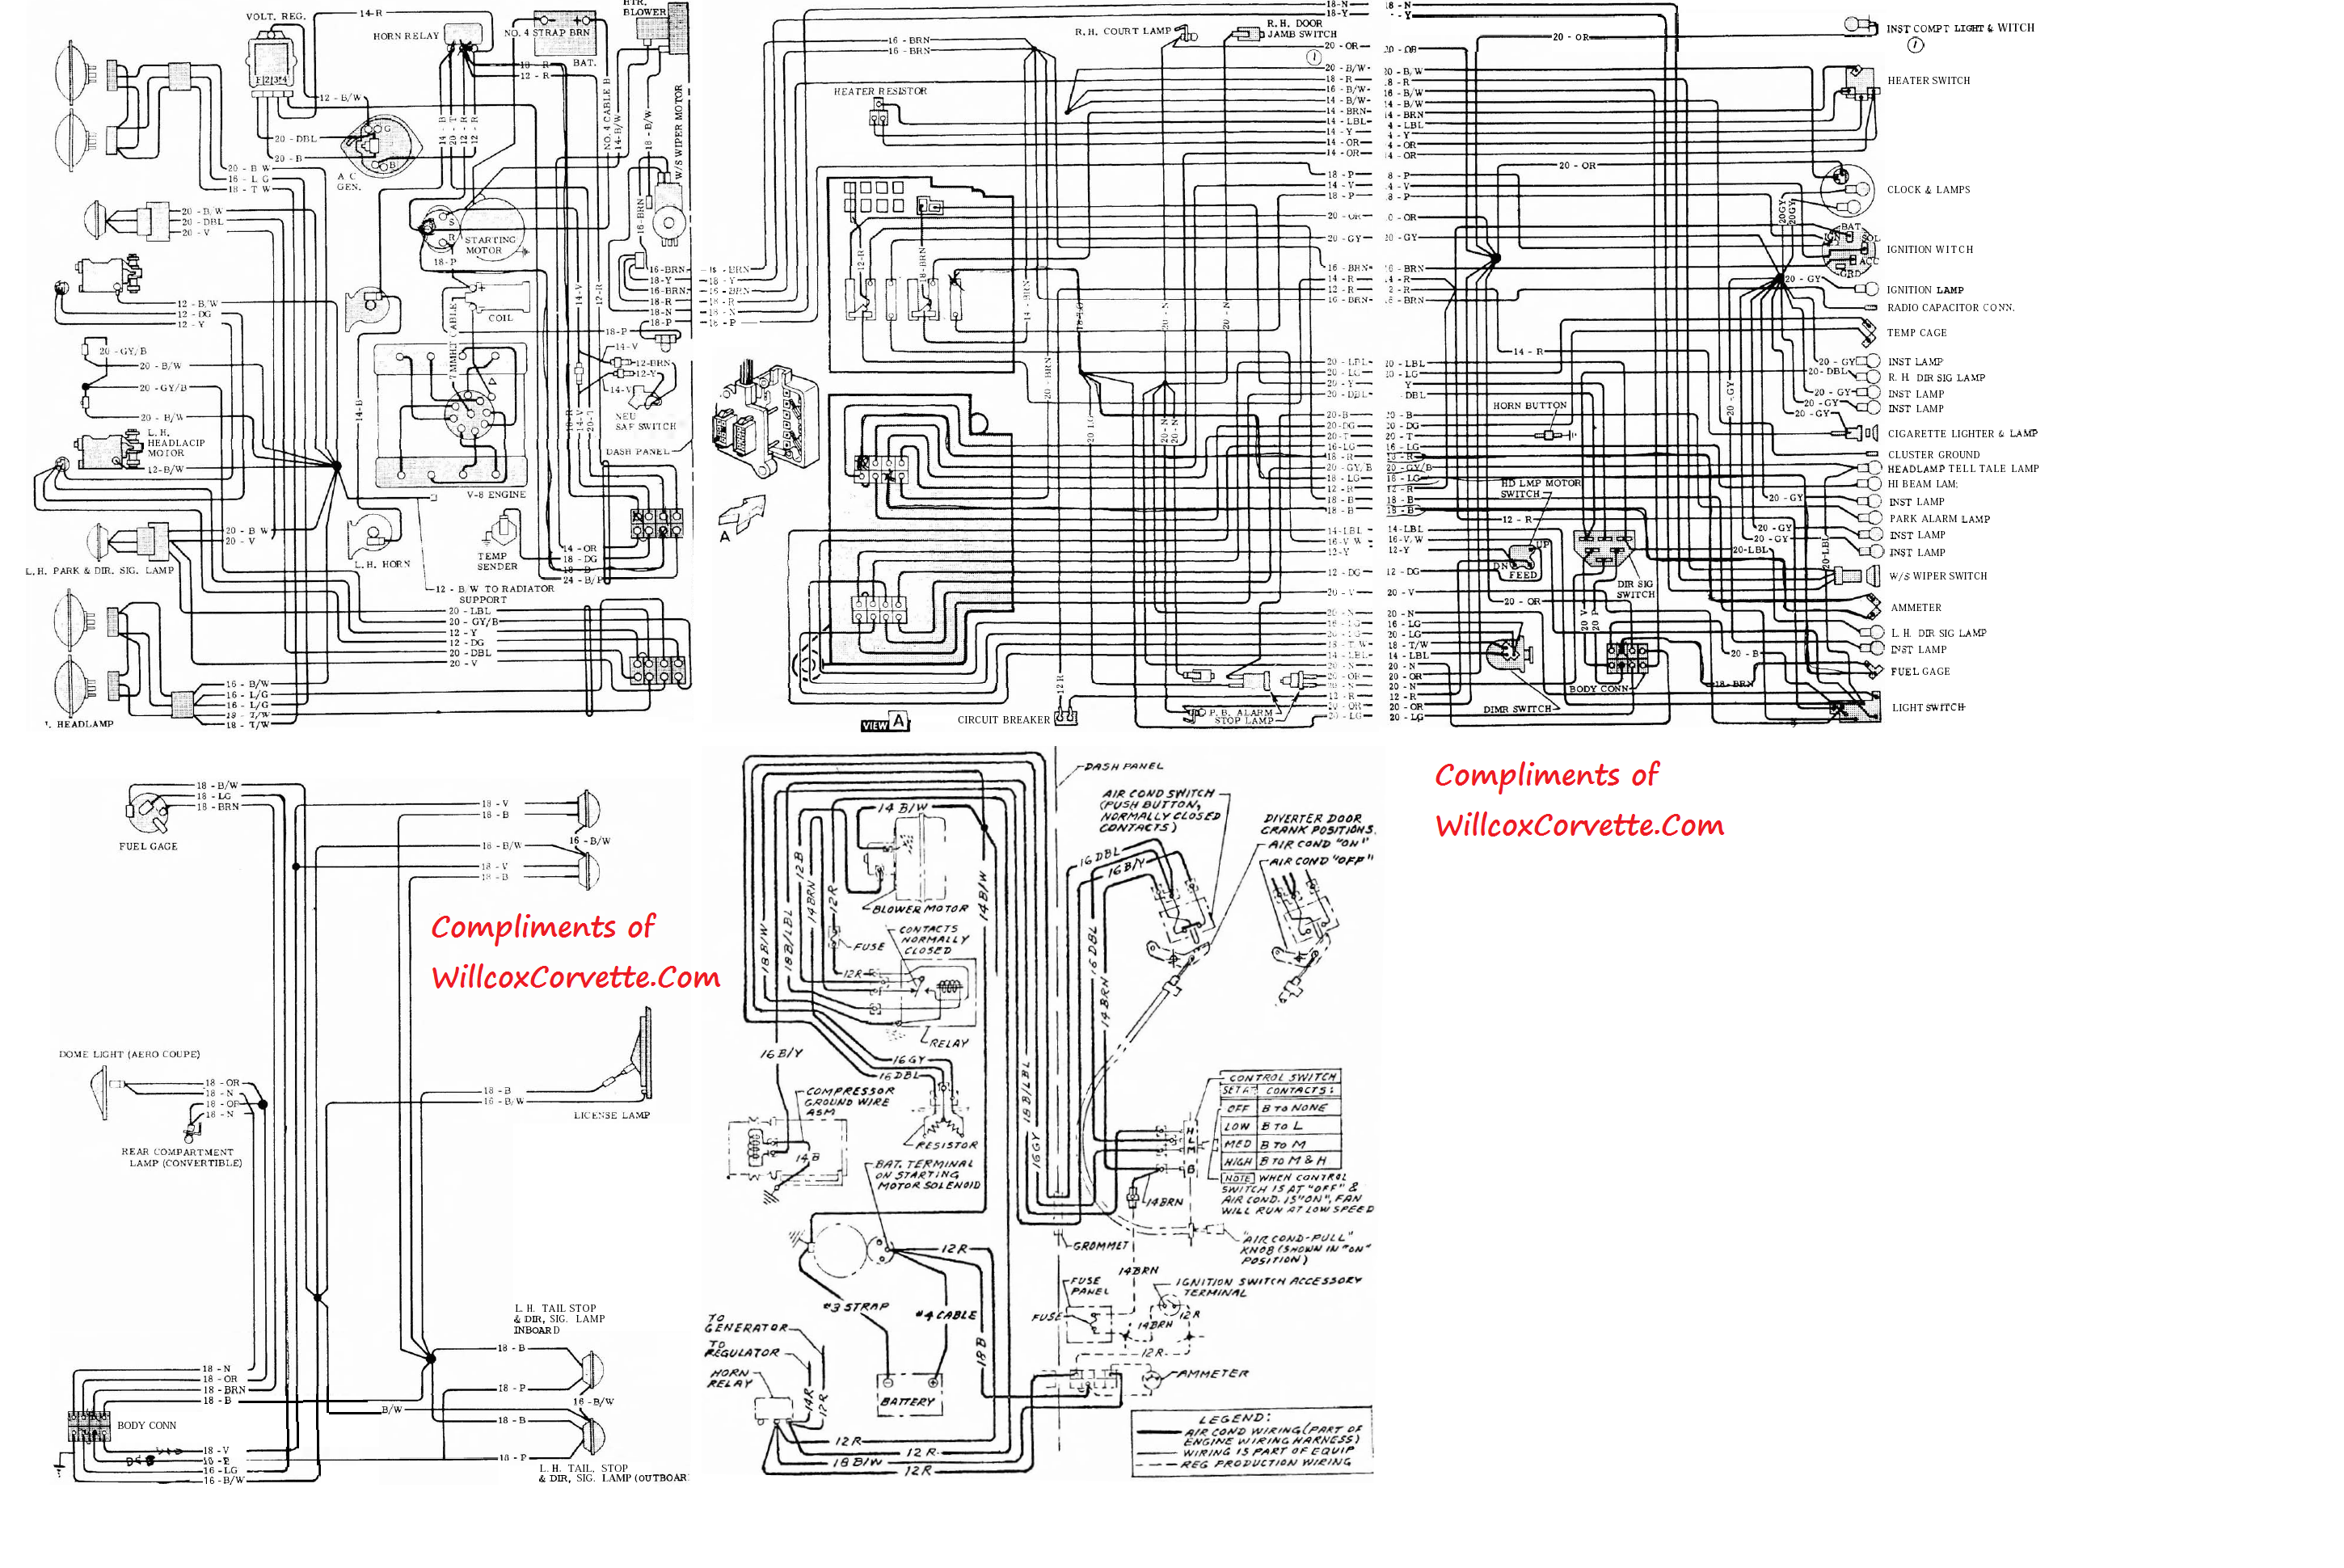 [DIAGRAM_09CH]  B468 1988 Gmc S15 Fuse Box Diagram | Manual Book and Wiring Schematic | 1988 Gmc S15 Fuse Box Diagram |  | Manual Book and Wiring Schematic